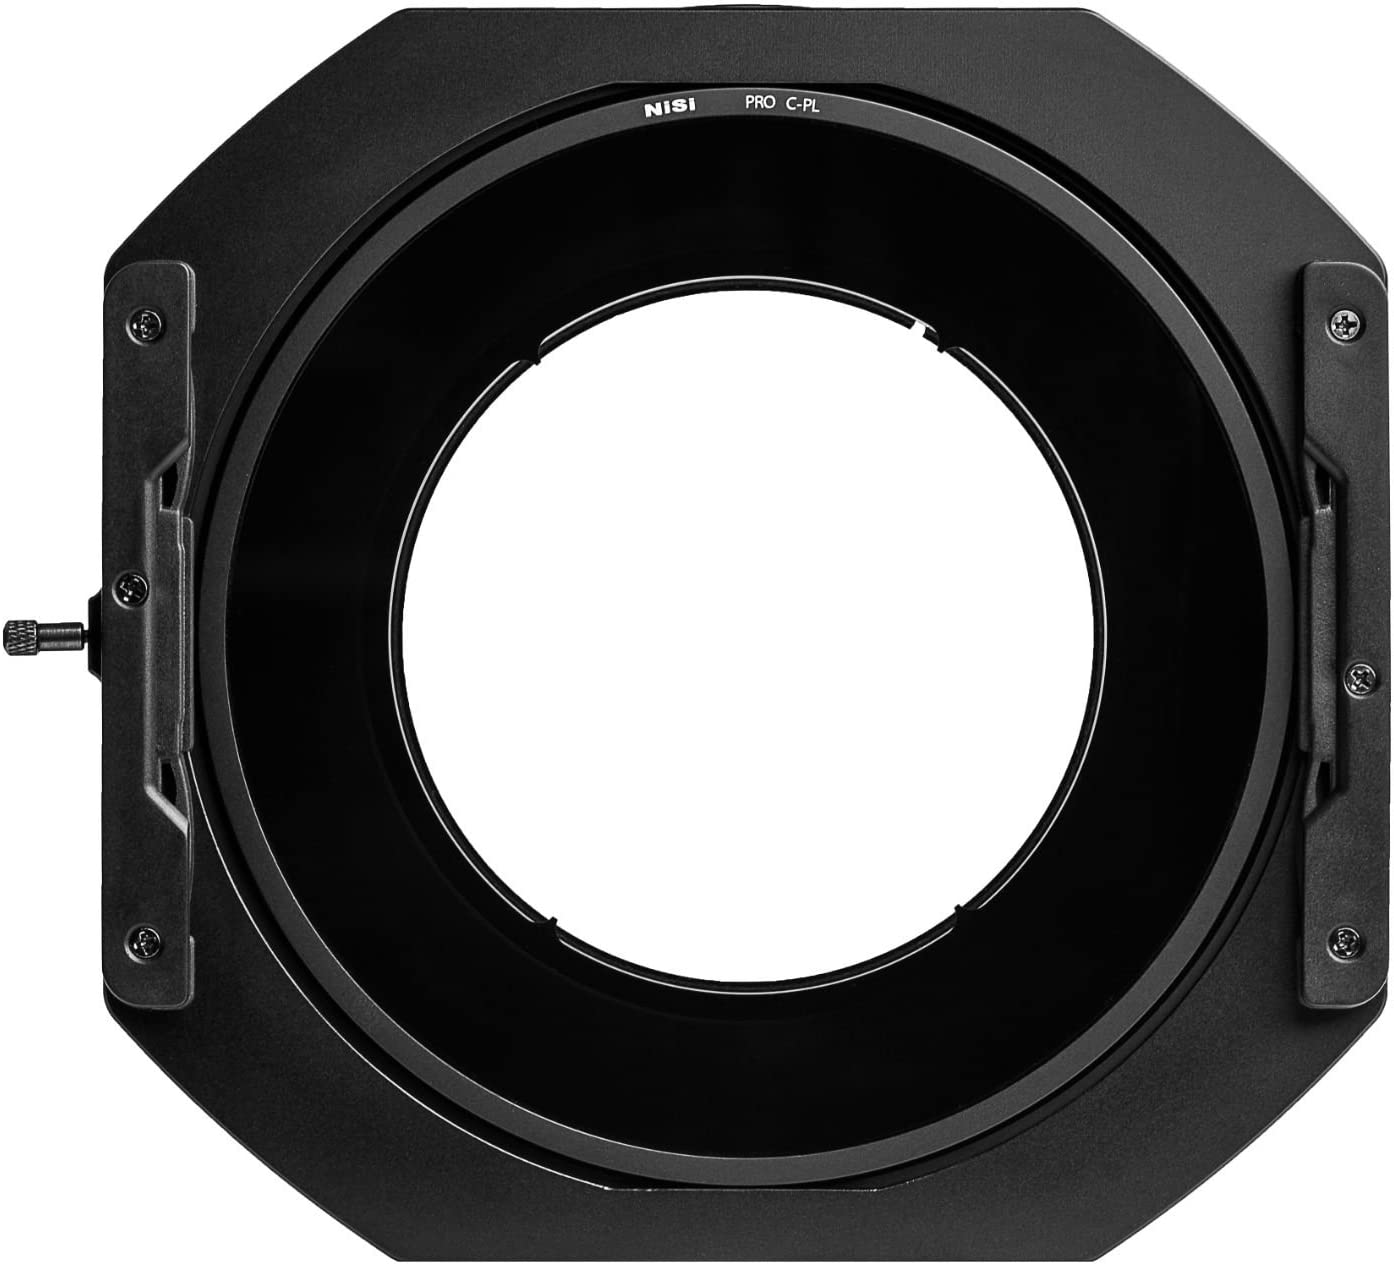 NiSi S5 150mm Filter Holder with CPL for Nikon PC 19mm f/4E ED Lens